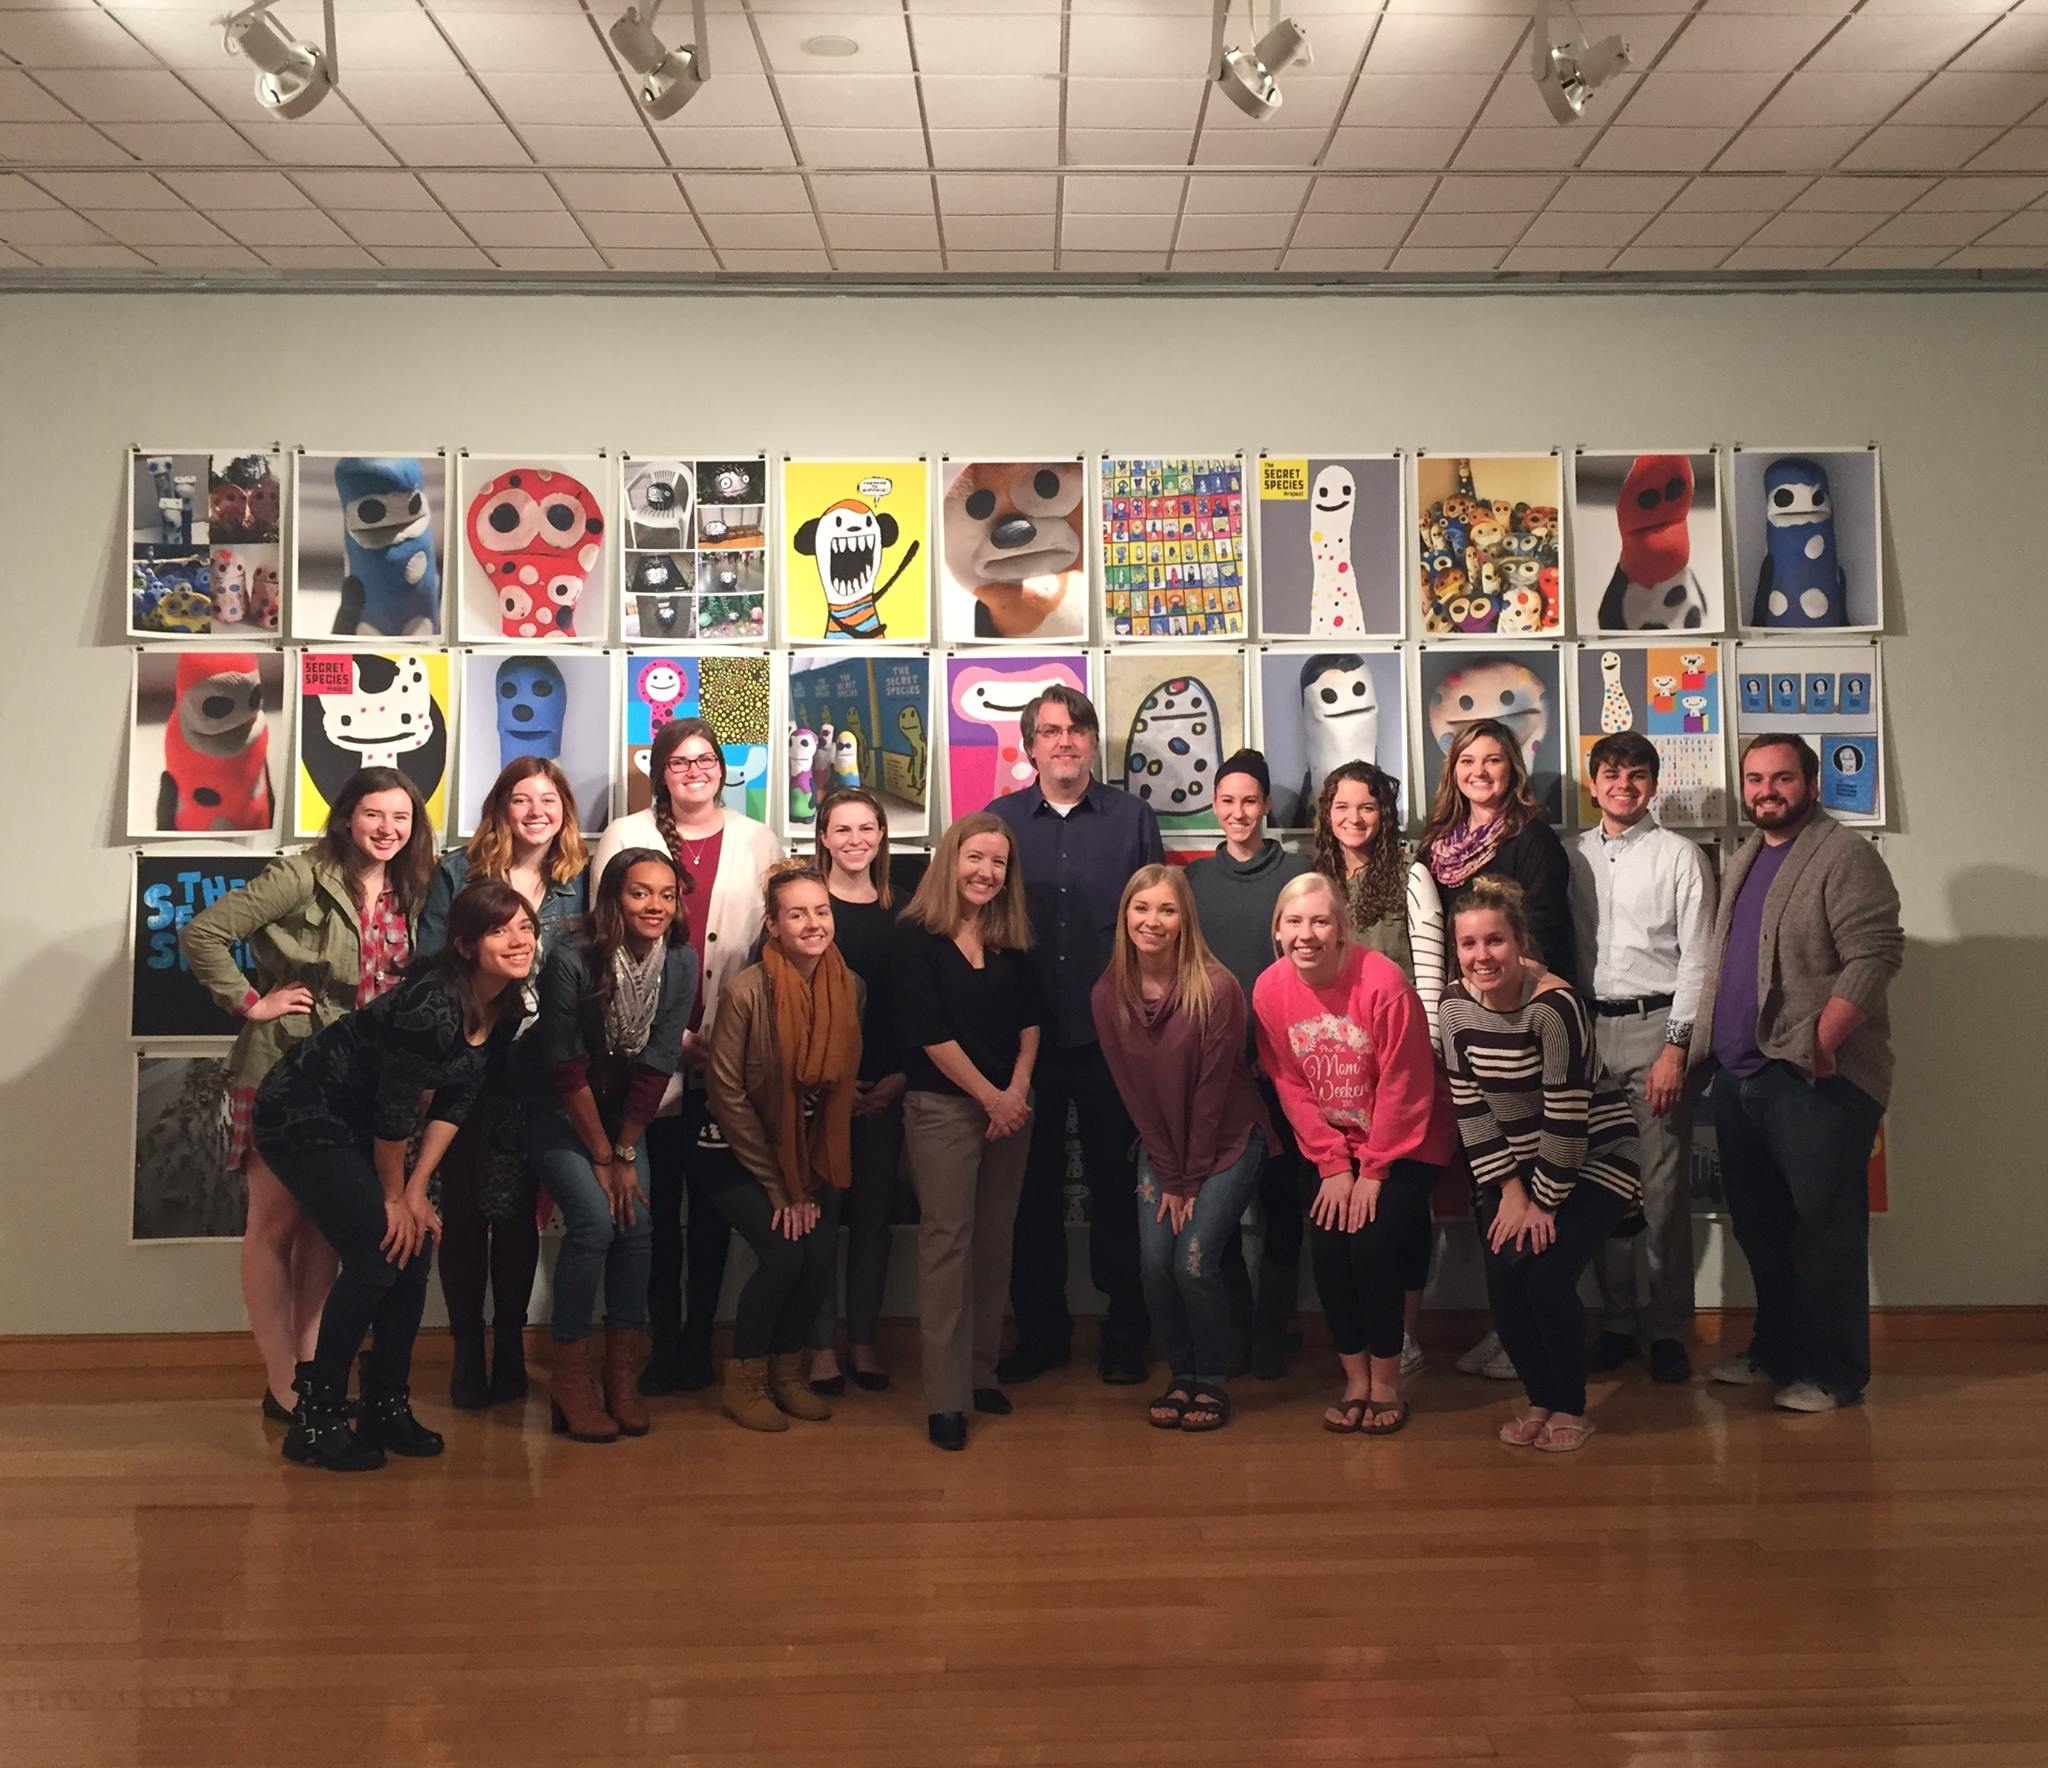 I met and worked with students in Art Education, Business, Marketing, and Graphic Design.